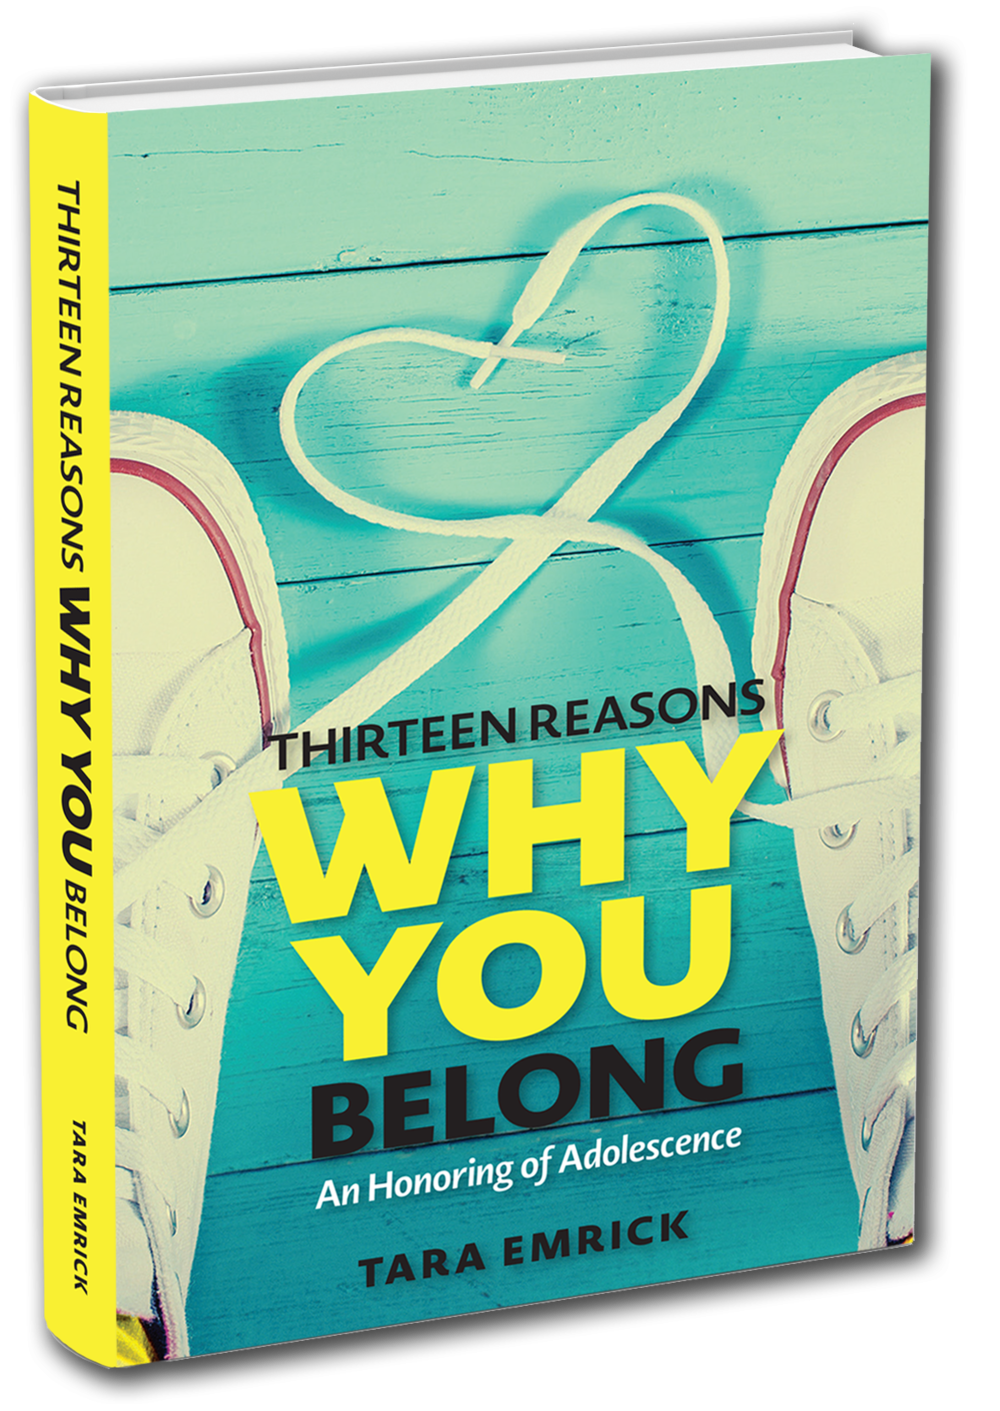 Our curriculum - We are morphing the soon-to-be released book Thirteen Reasons Why You Belong: An Honoring of Adolescence into a 13-week curriculum for a small group of students in a Denver Public Middle/High School this fall. The purpose of this book/curriculum is simple: remind adolescents that they belong here and they matter. The way in is through the heart and it's time for all of us to reconnect to our heart center so that we may compassionately reconnect with one another.This book will be available for purchase in May 2019. Click on the tab above for more information.